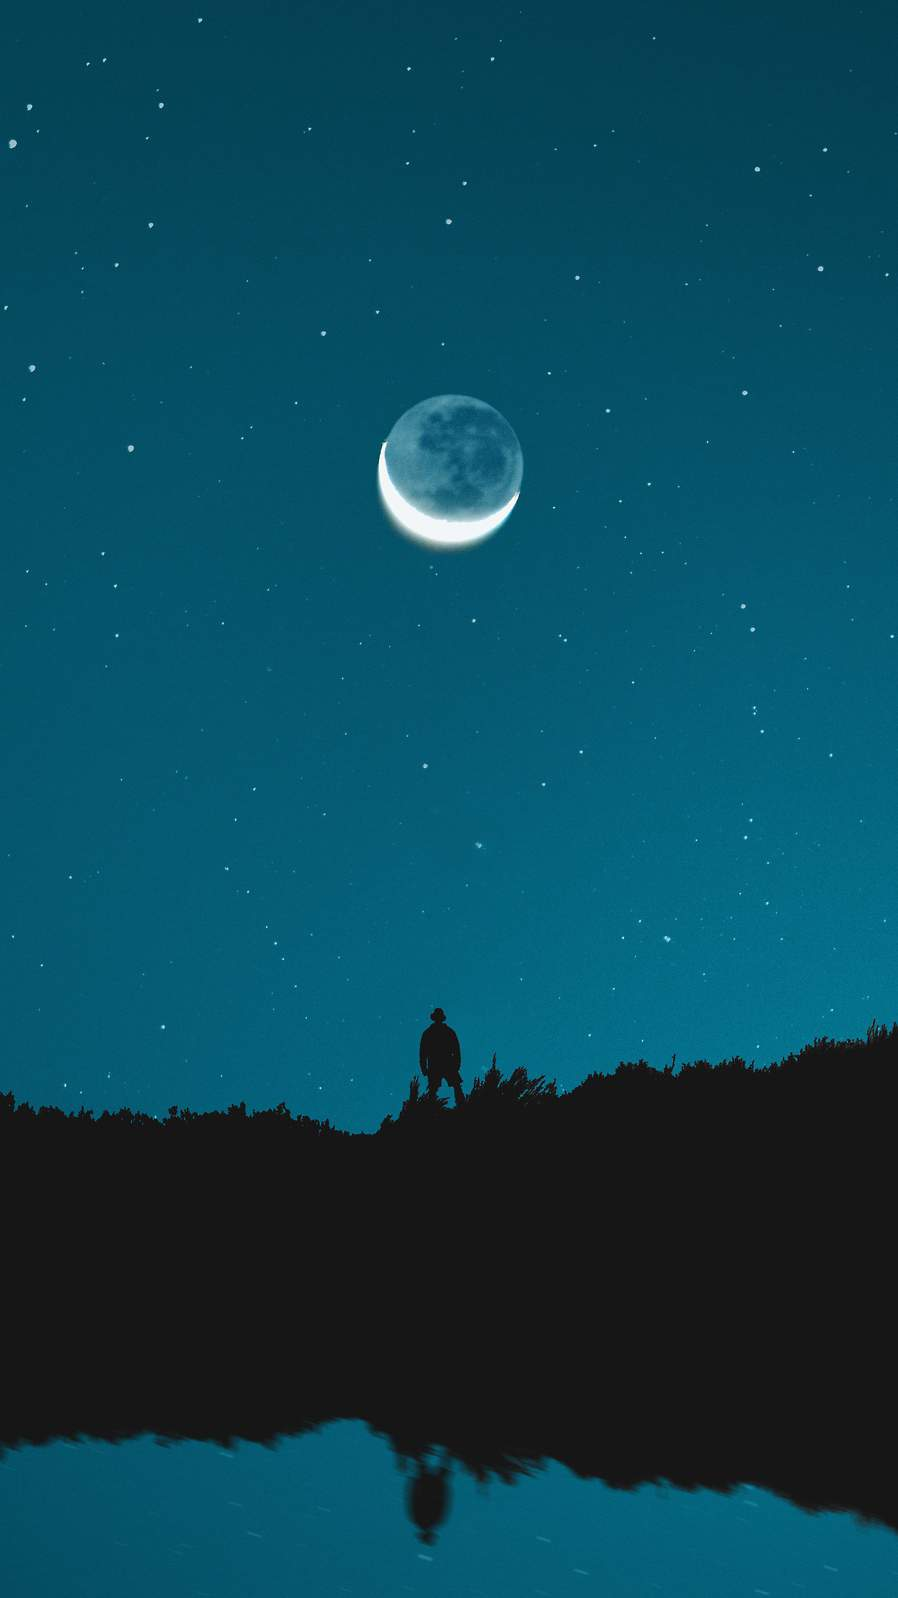 Moon Eclipse and Man iPhone Wallpaper